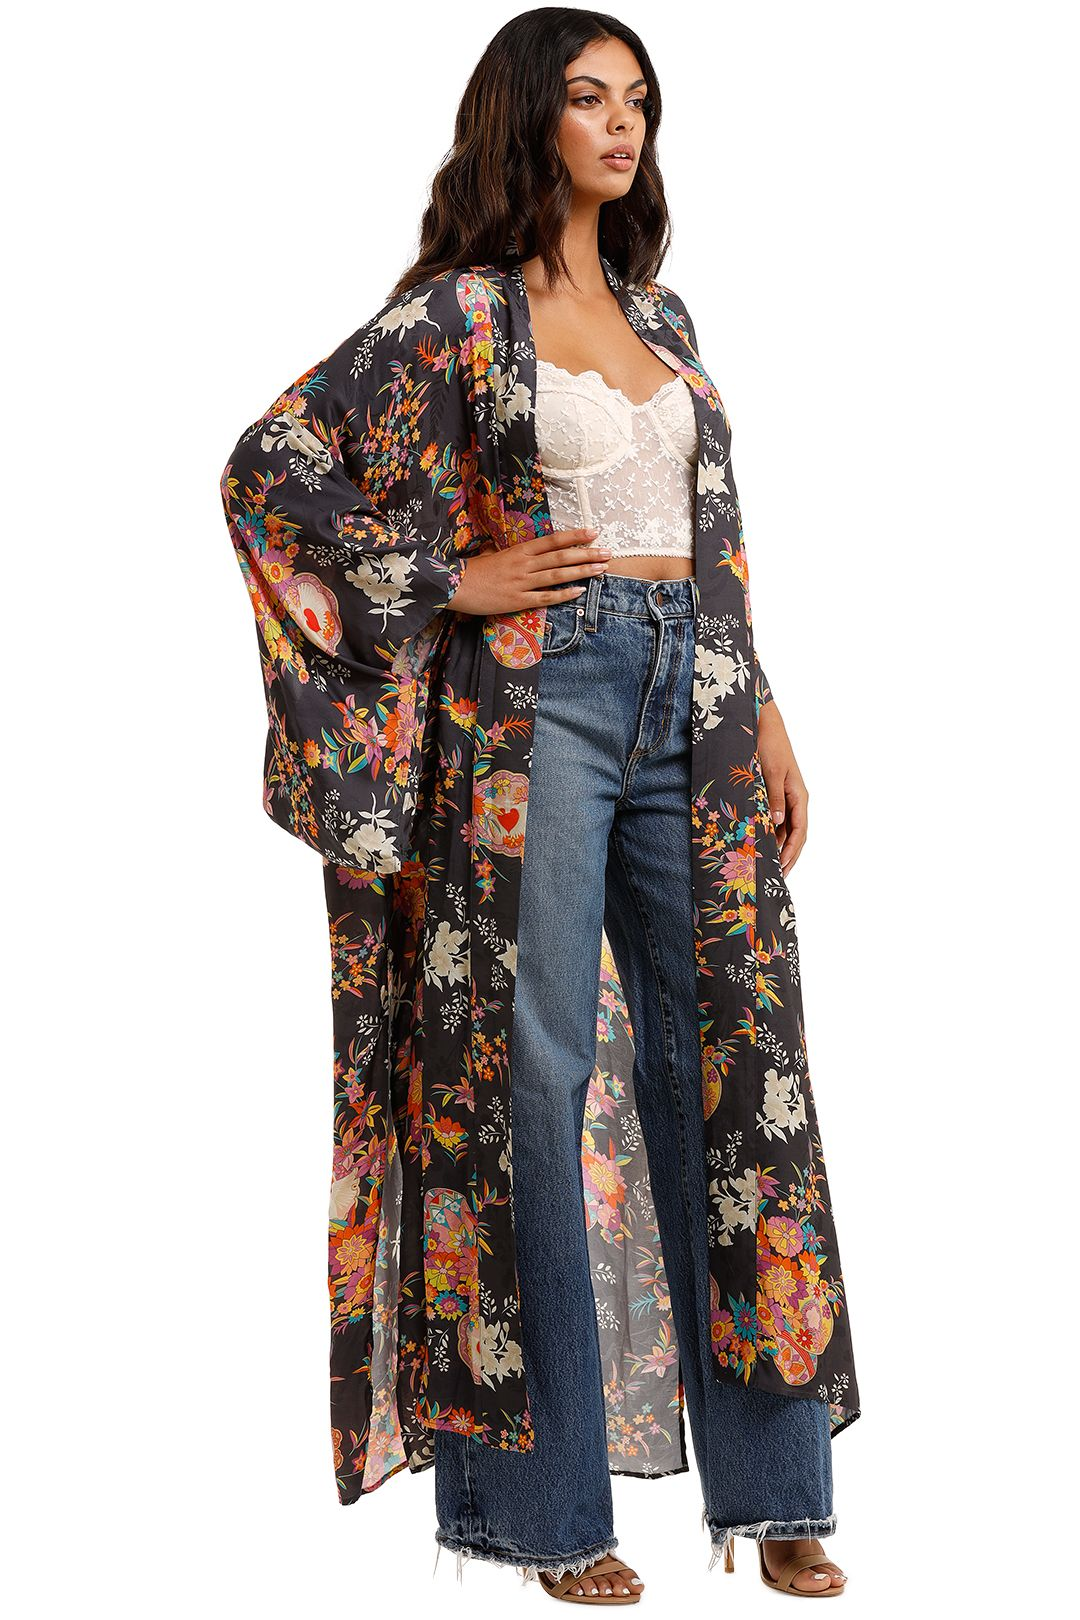 Spell Leo Maxi Robe Charcoal Floral